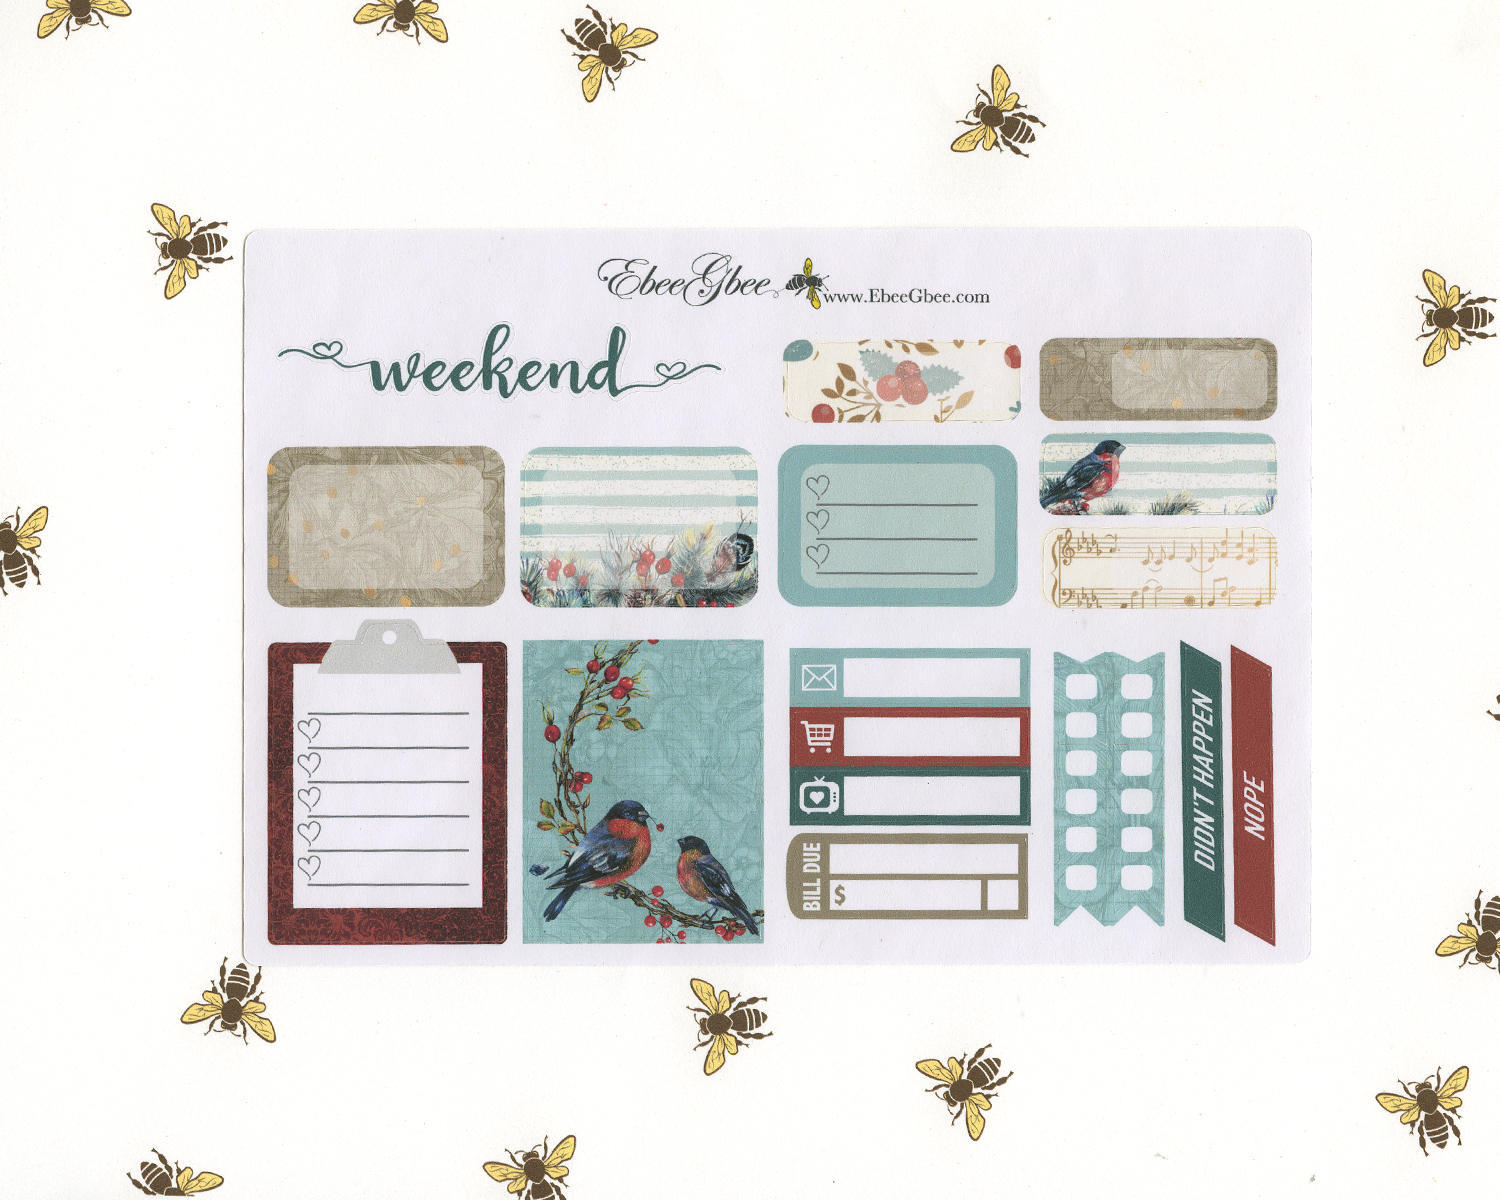 GOLDEN BIRD SAMPLER Weekly Planner Sticker Set | Limited Edition Hand Painted Golden Shimmer Accents